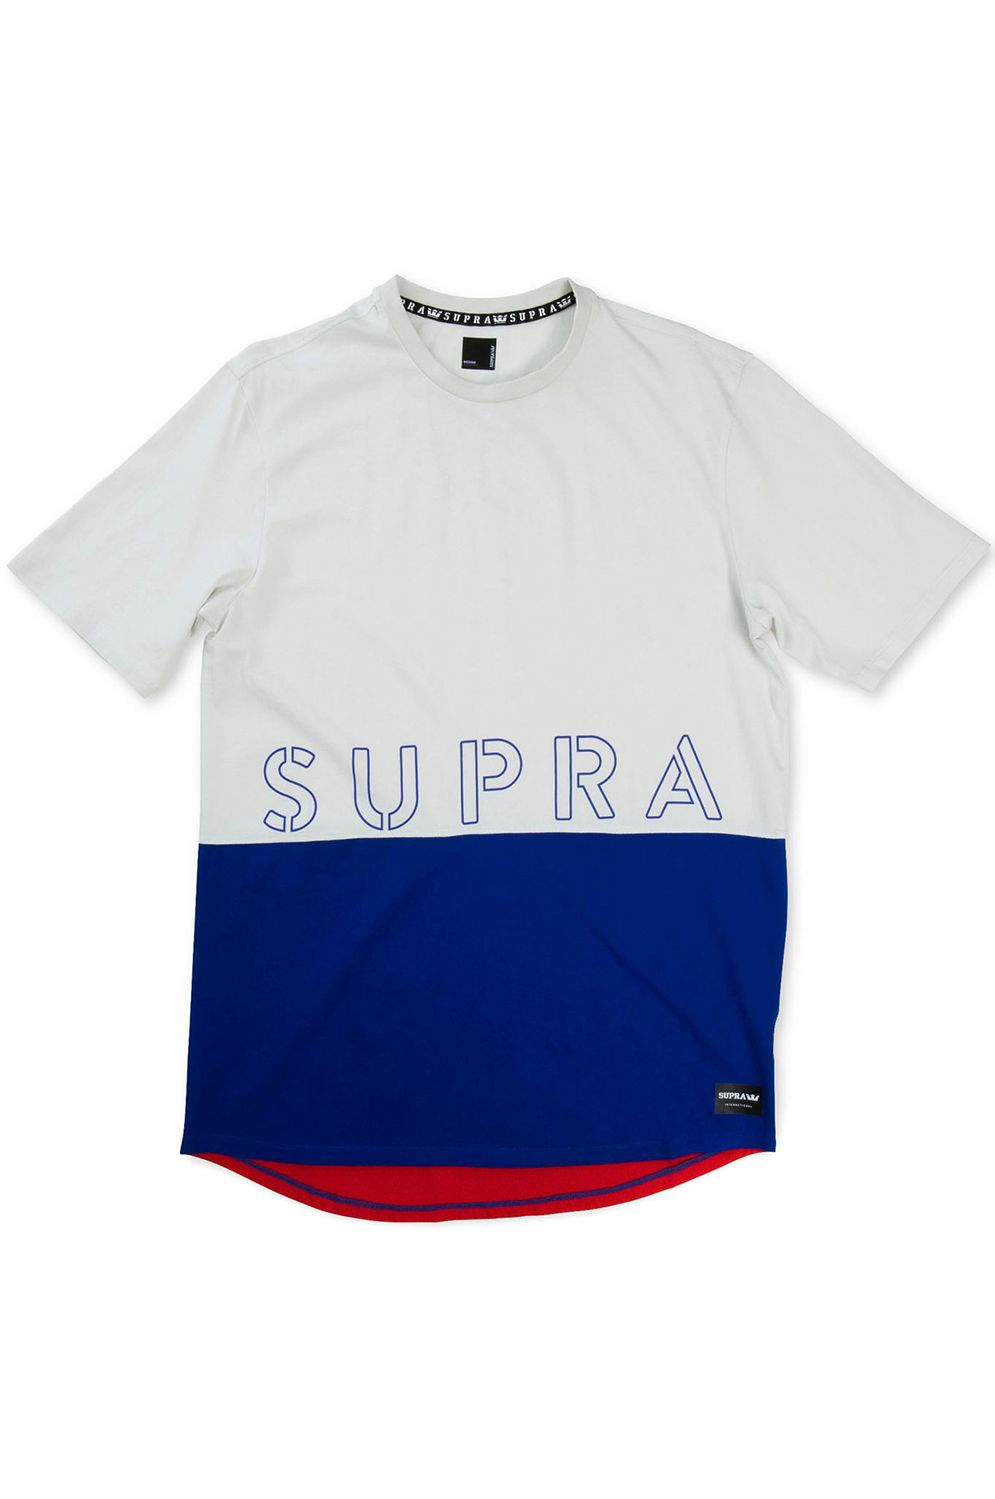 T-Shirt Supra COLOR BLOCK CREW II White/Blue/Red